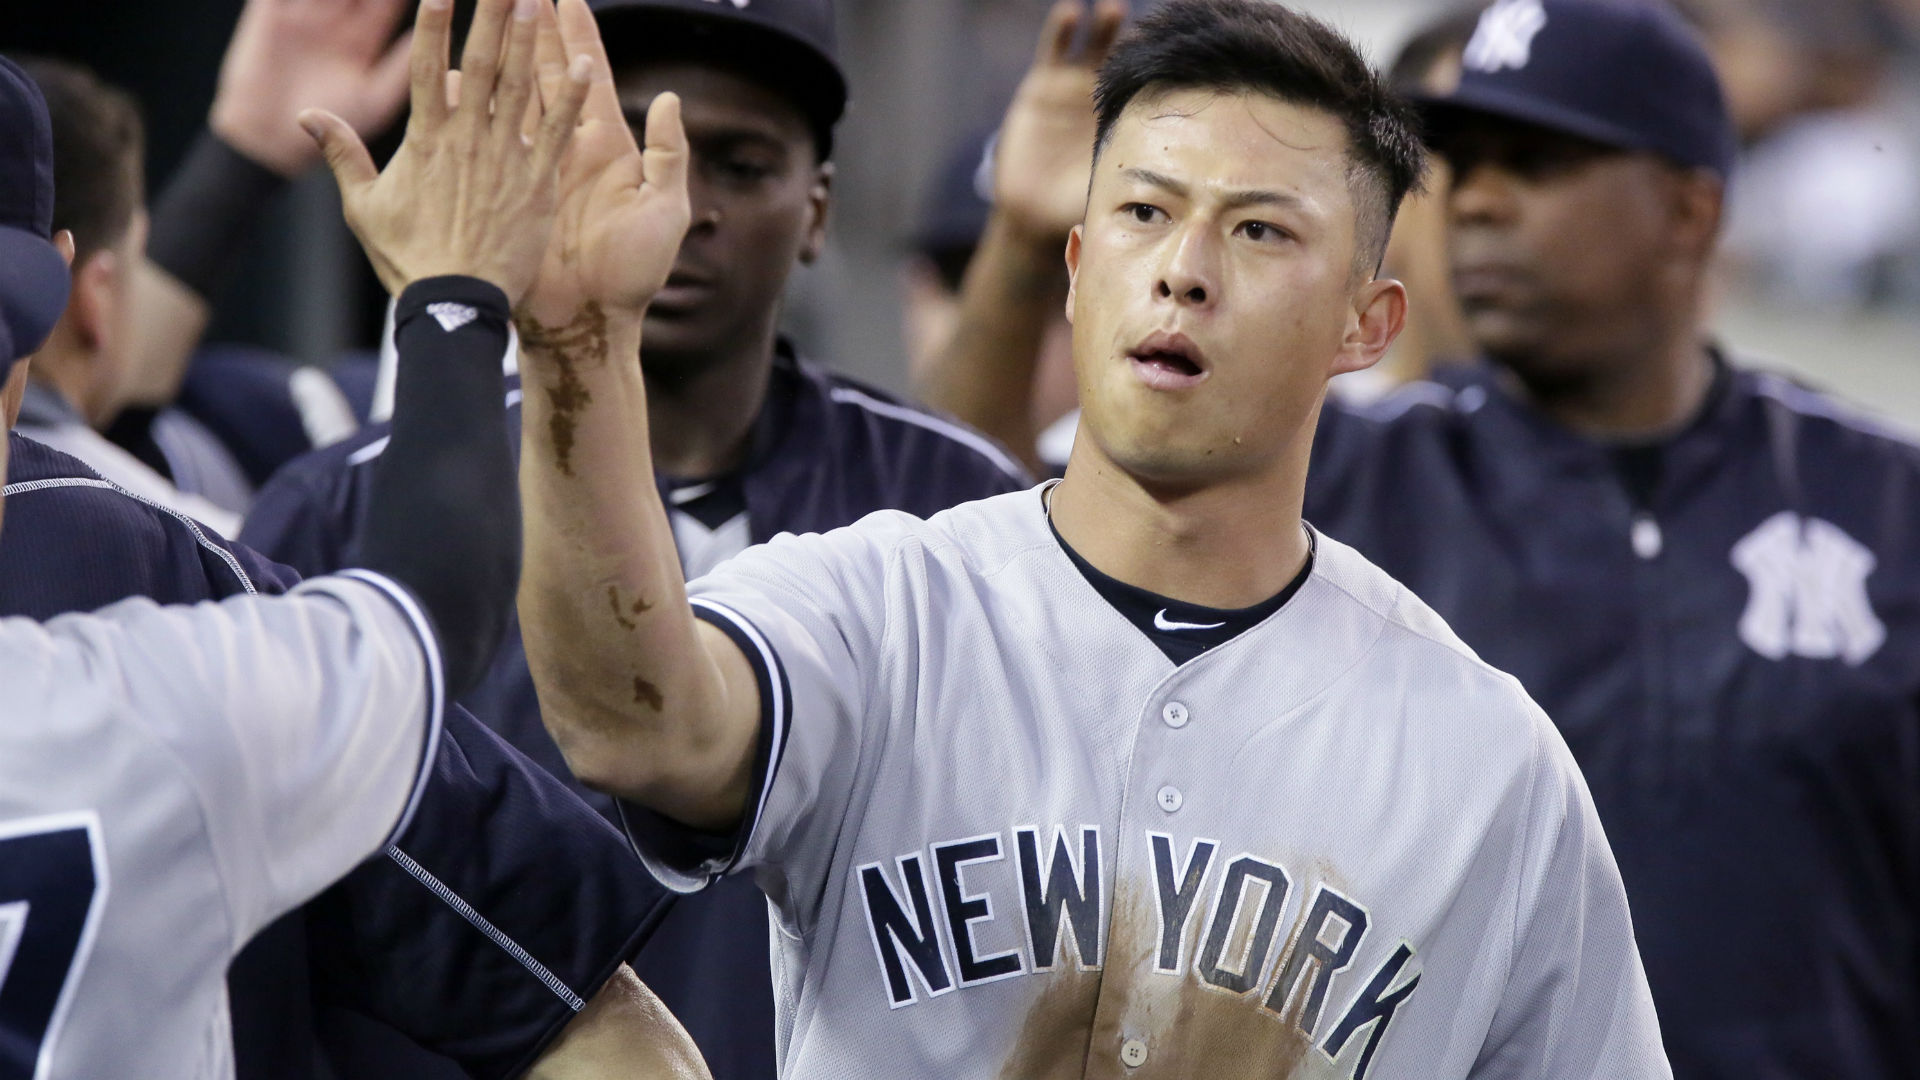 Yankees make Sunday morning trade, deal Rob Refsnyder to Blue Jays